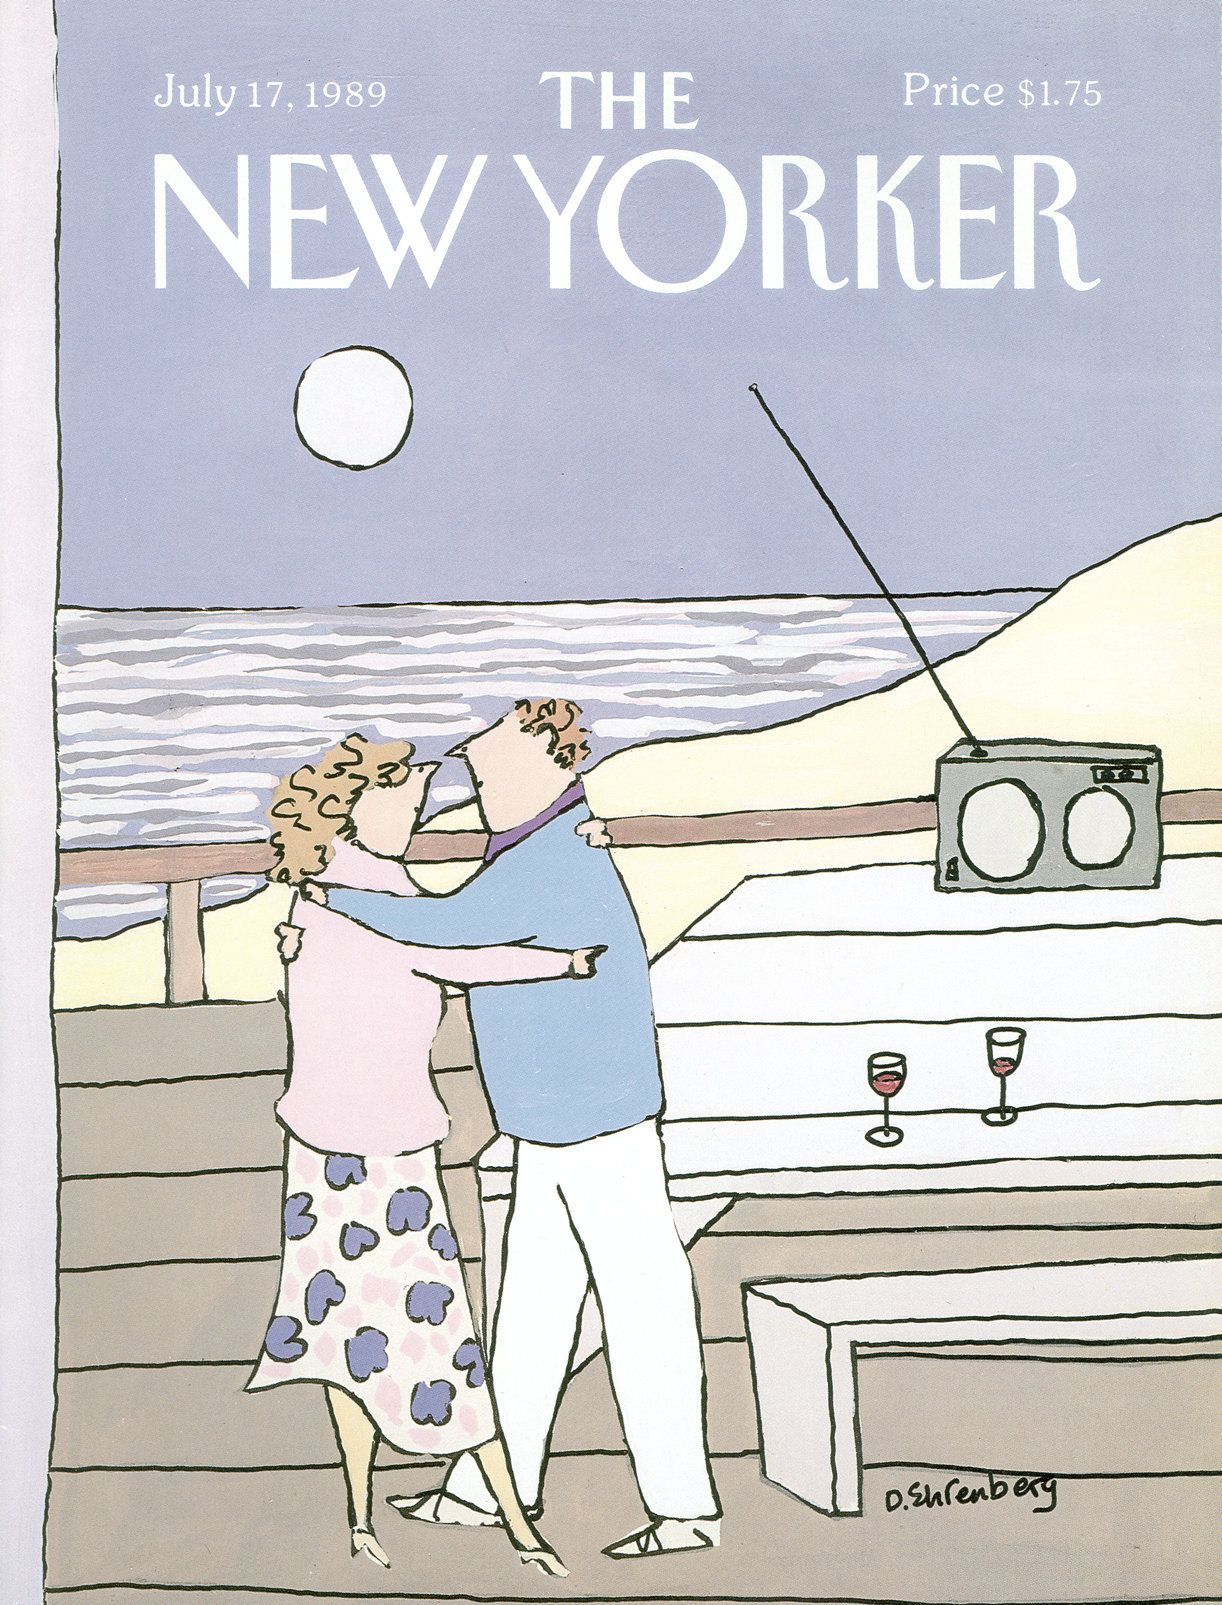 The New Yorker - Monday, July 17, 1989 - Issue # 3361 - Vol. 65 - N° 22 - Cover by : Devera Ehrenberg